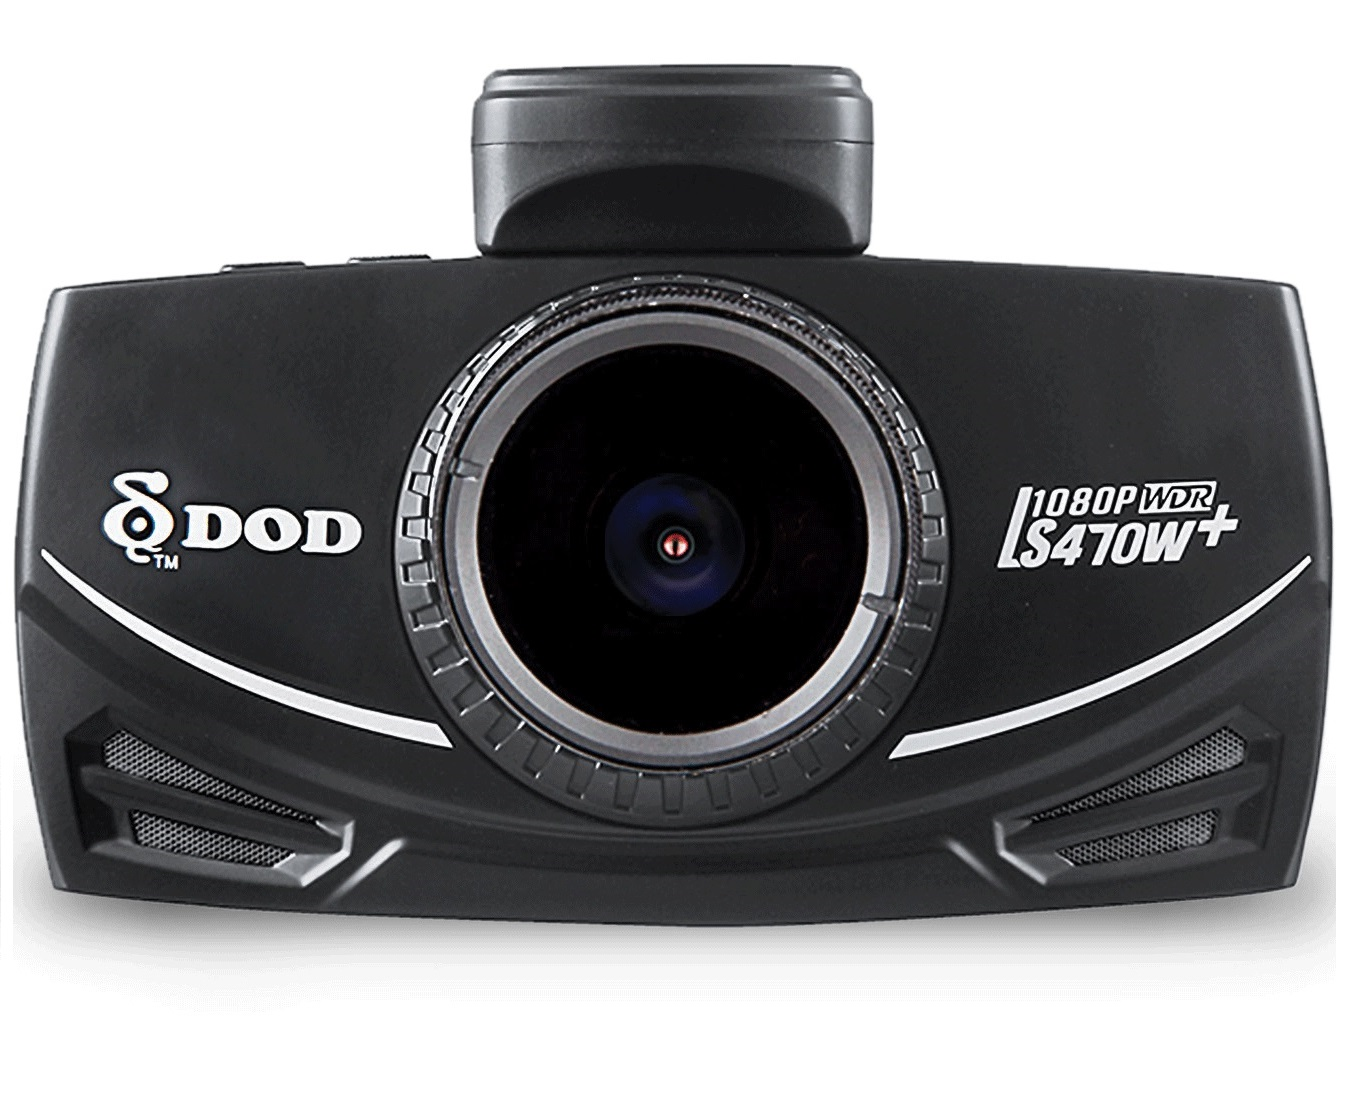 DOD Plus 1080p Full HD Dash Camera & GPS Logging